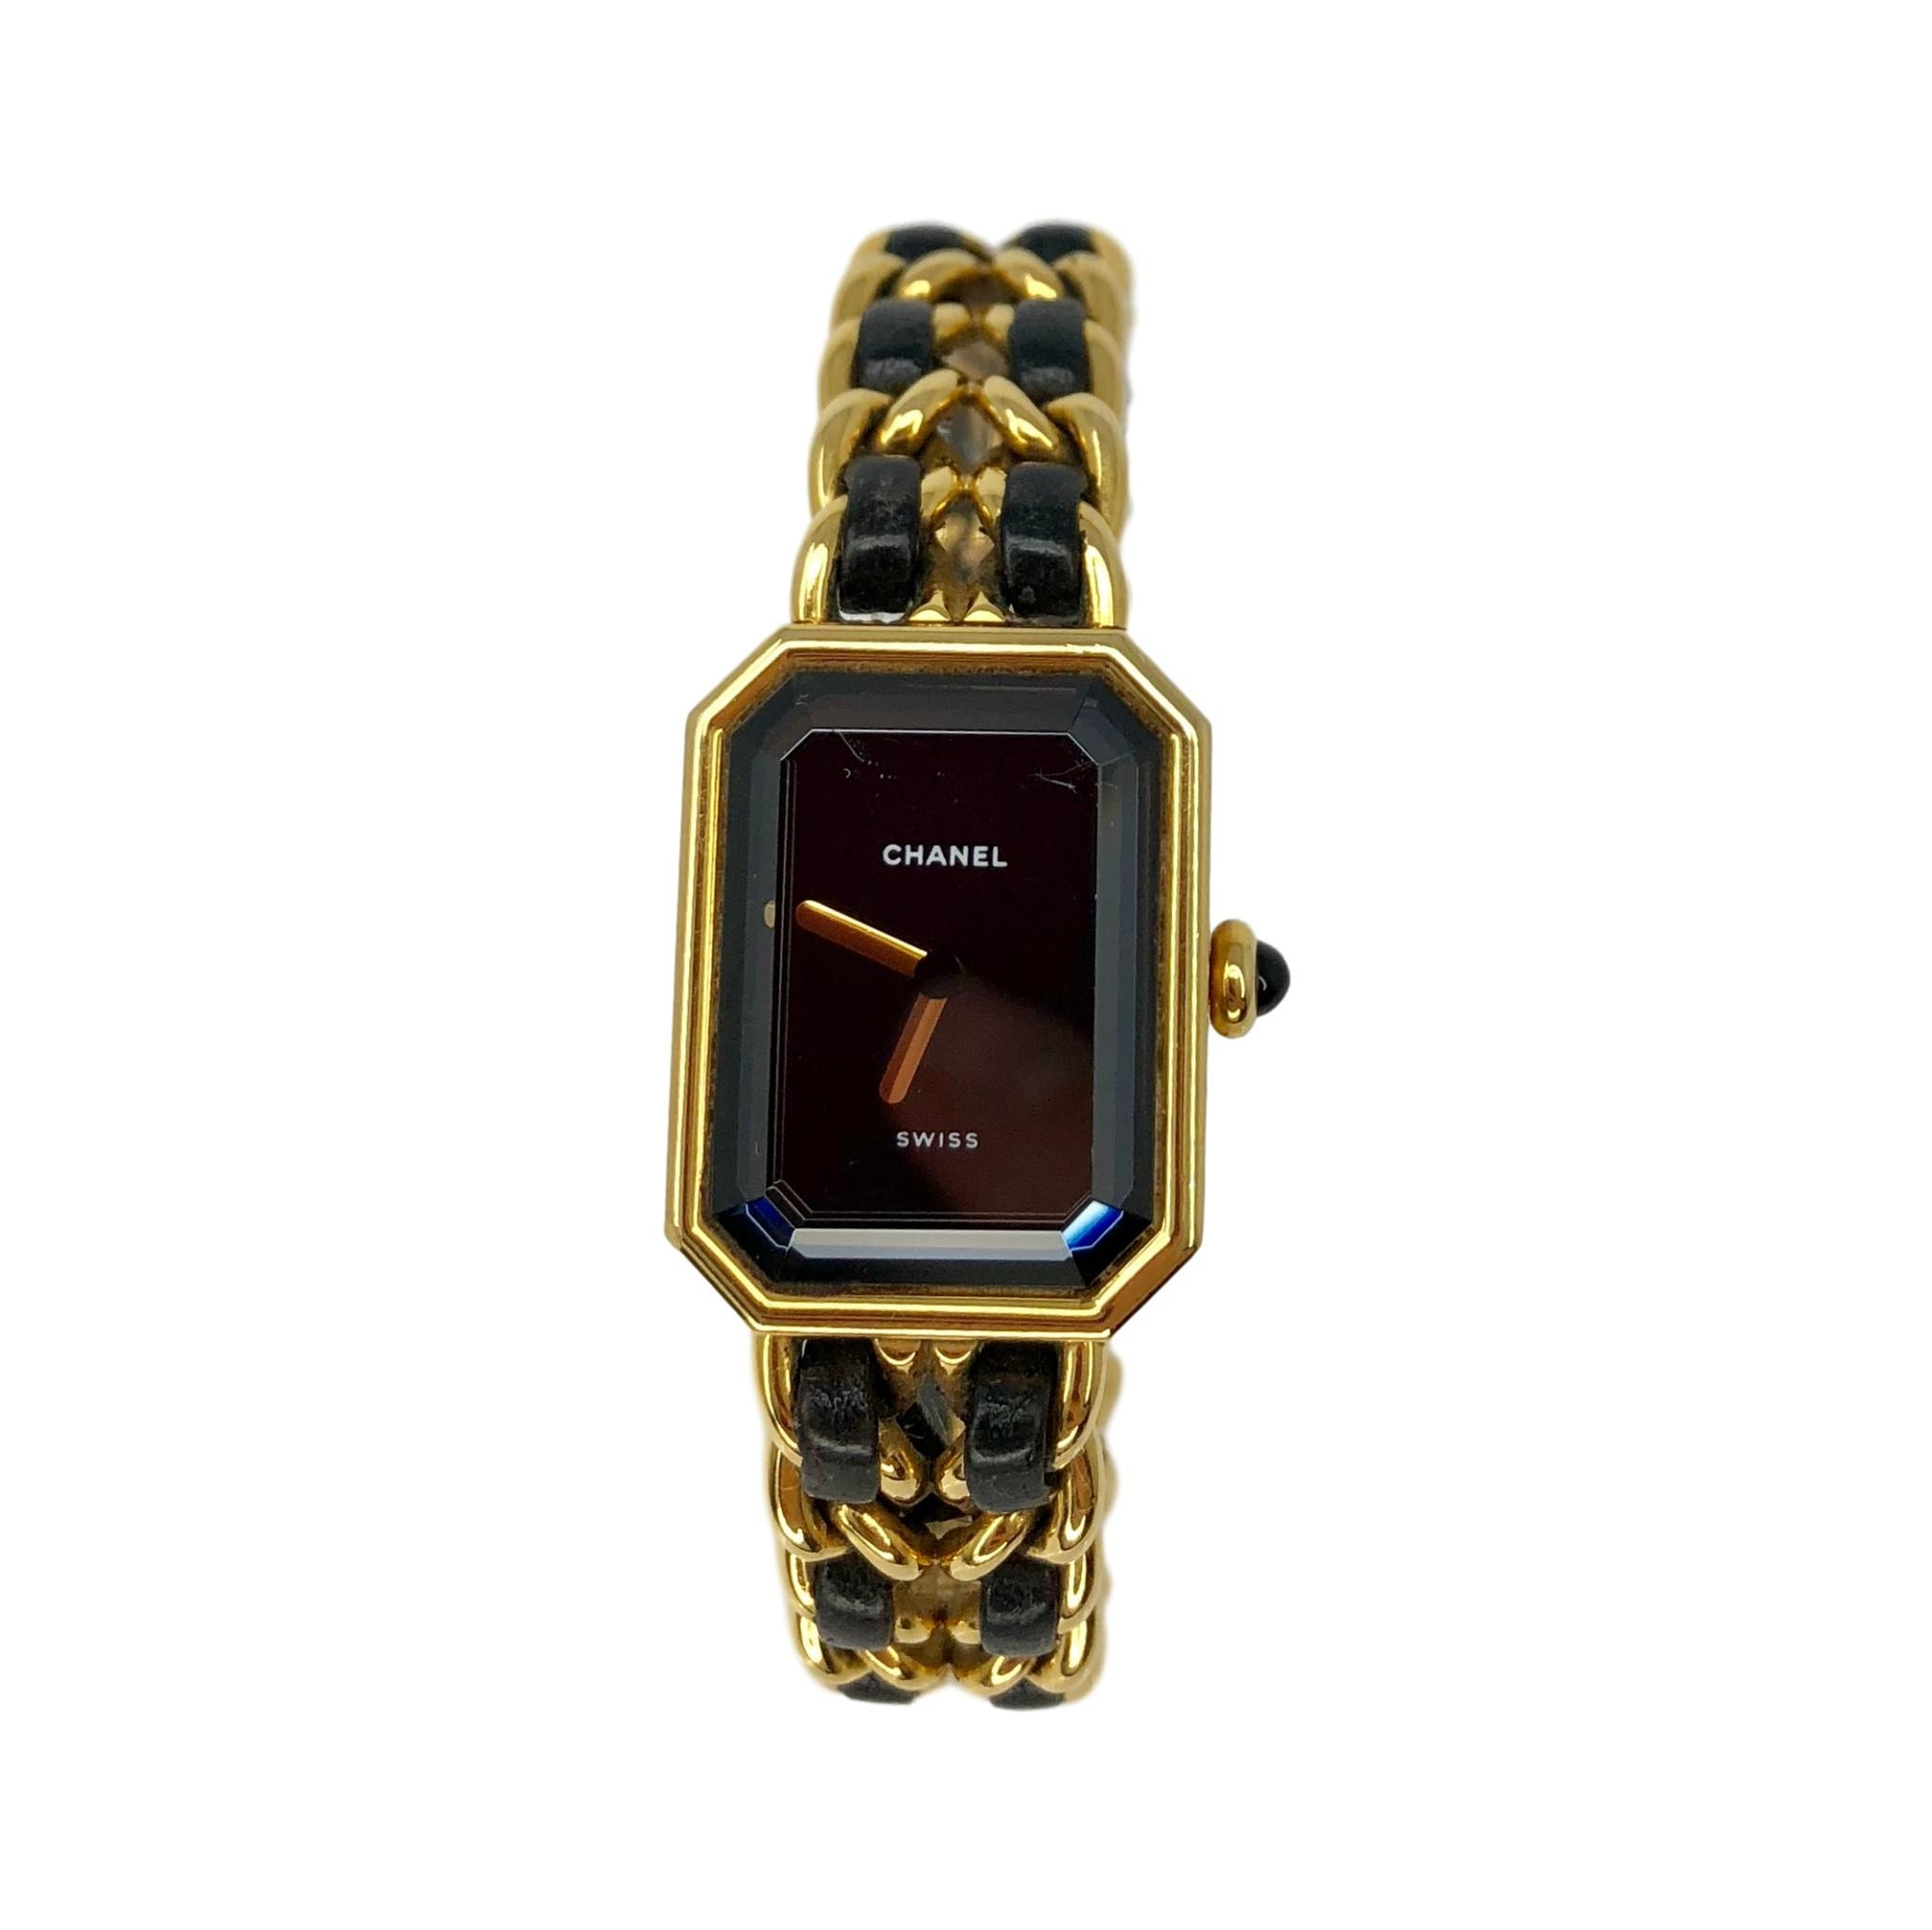 CHANEL Premiere Black Gold-plated Stainless Steel Women's Watch